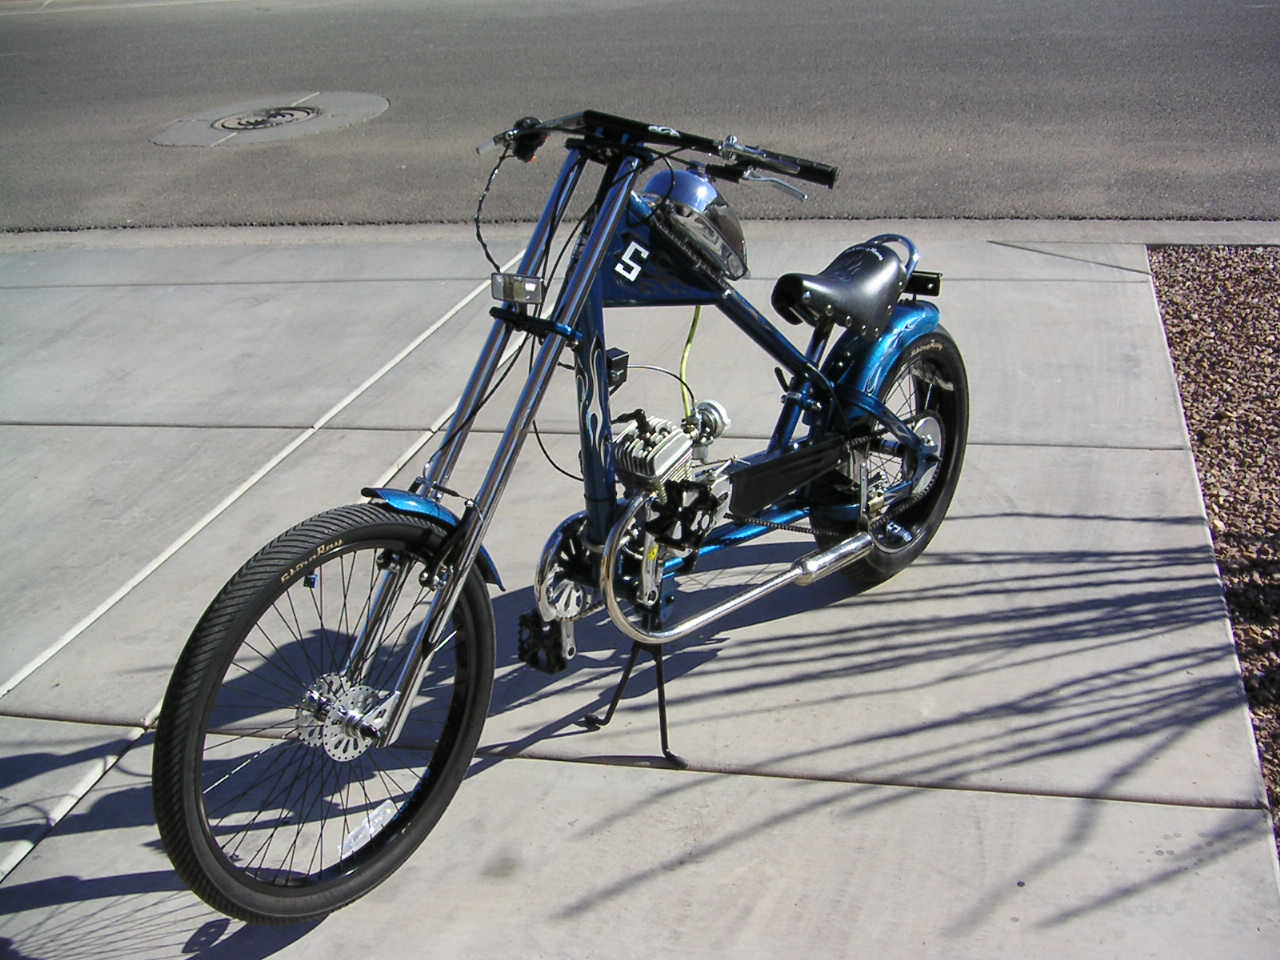 occ-schwinn-chopper-standard-and-xl-models-004.jpg